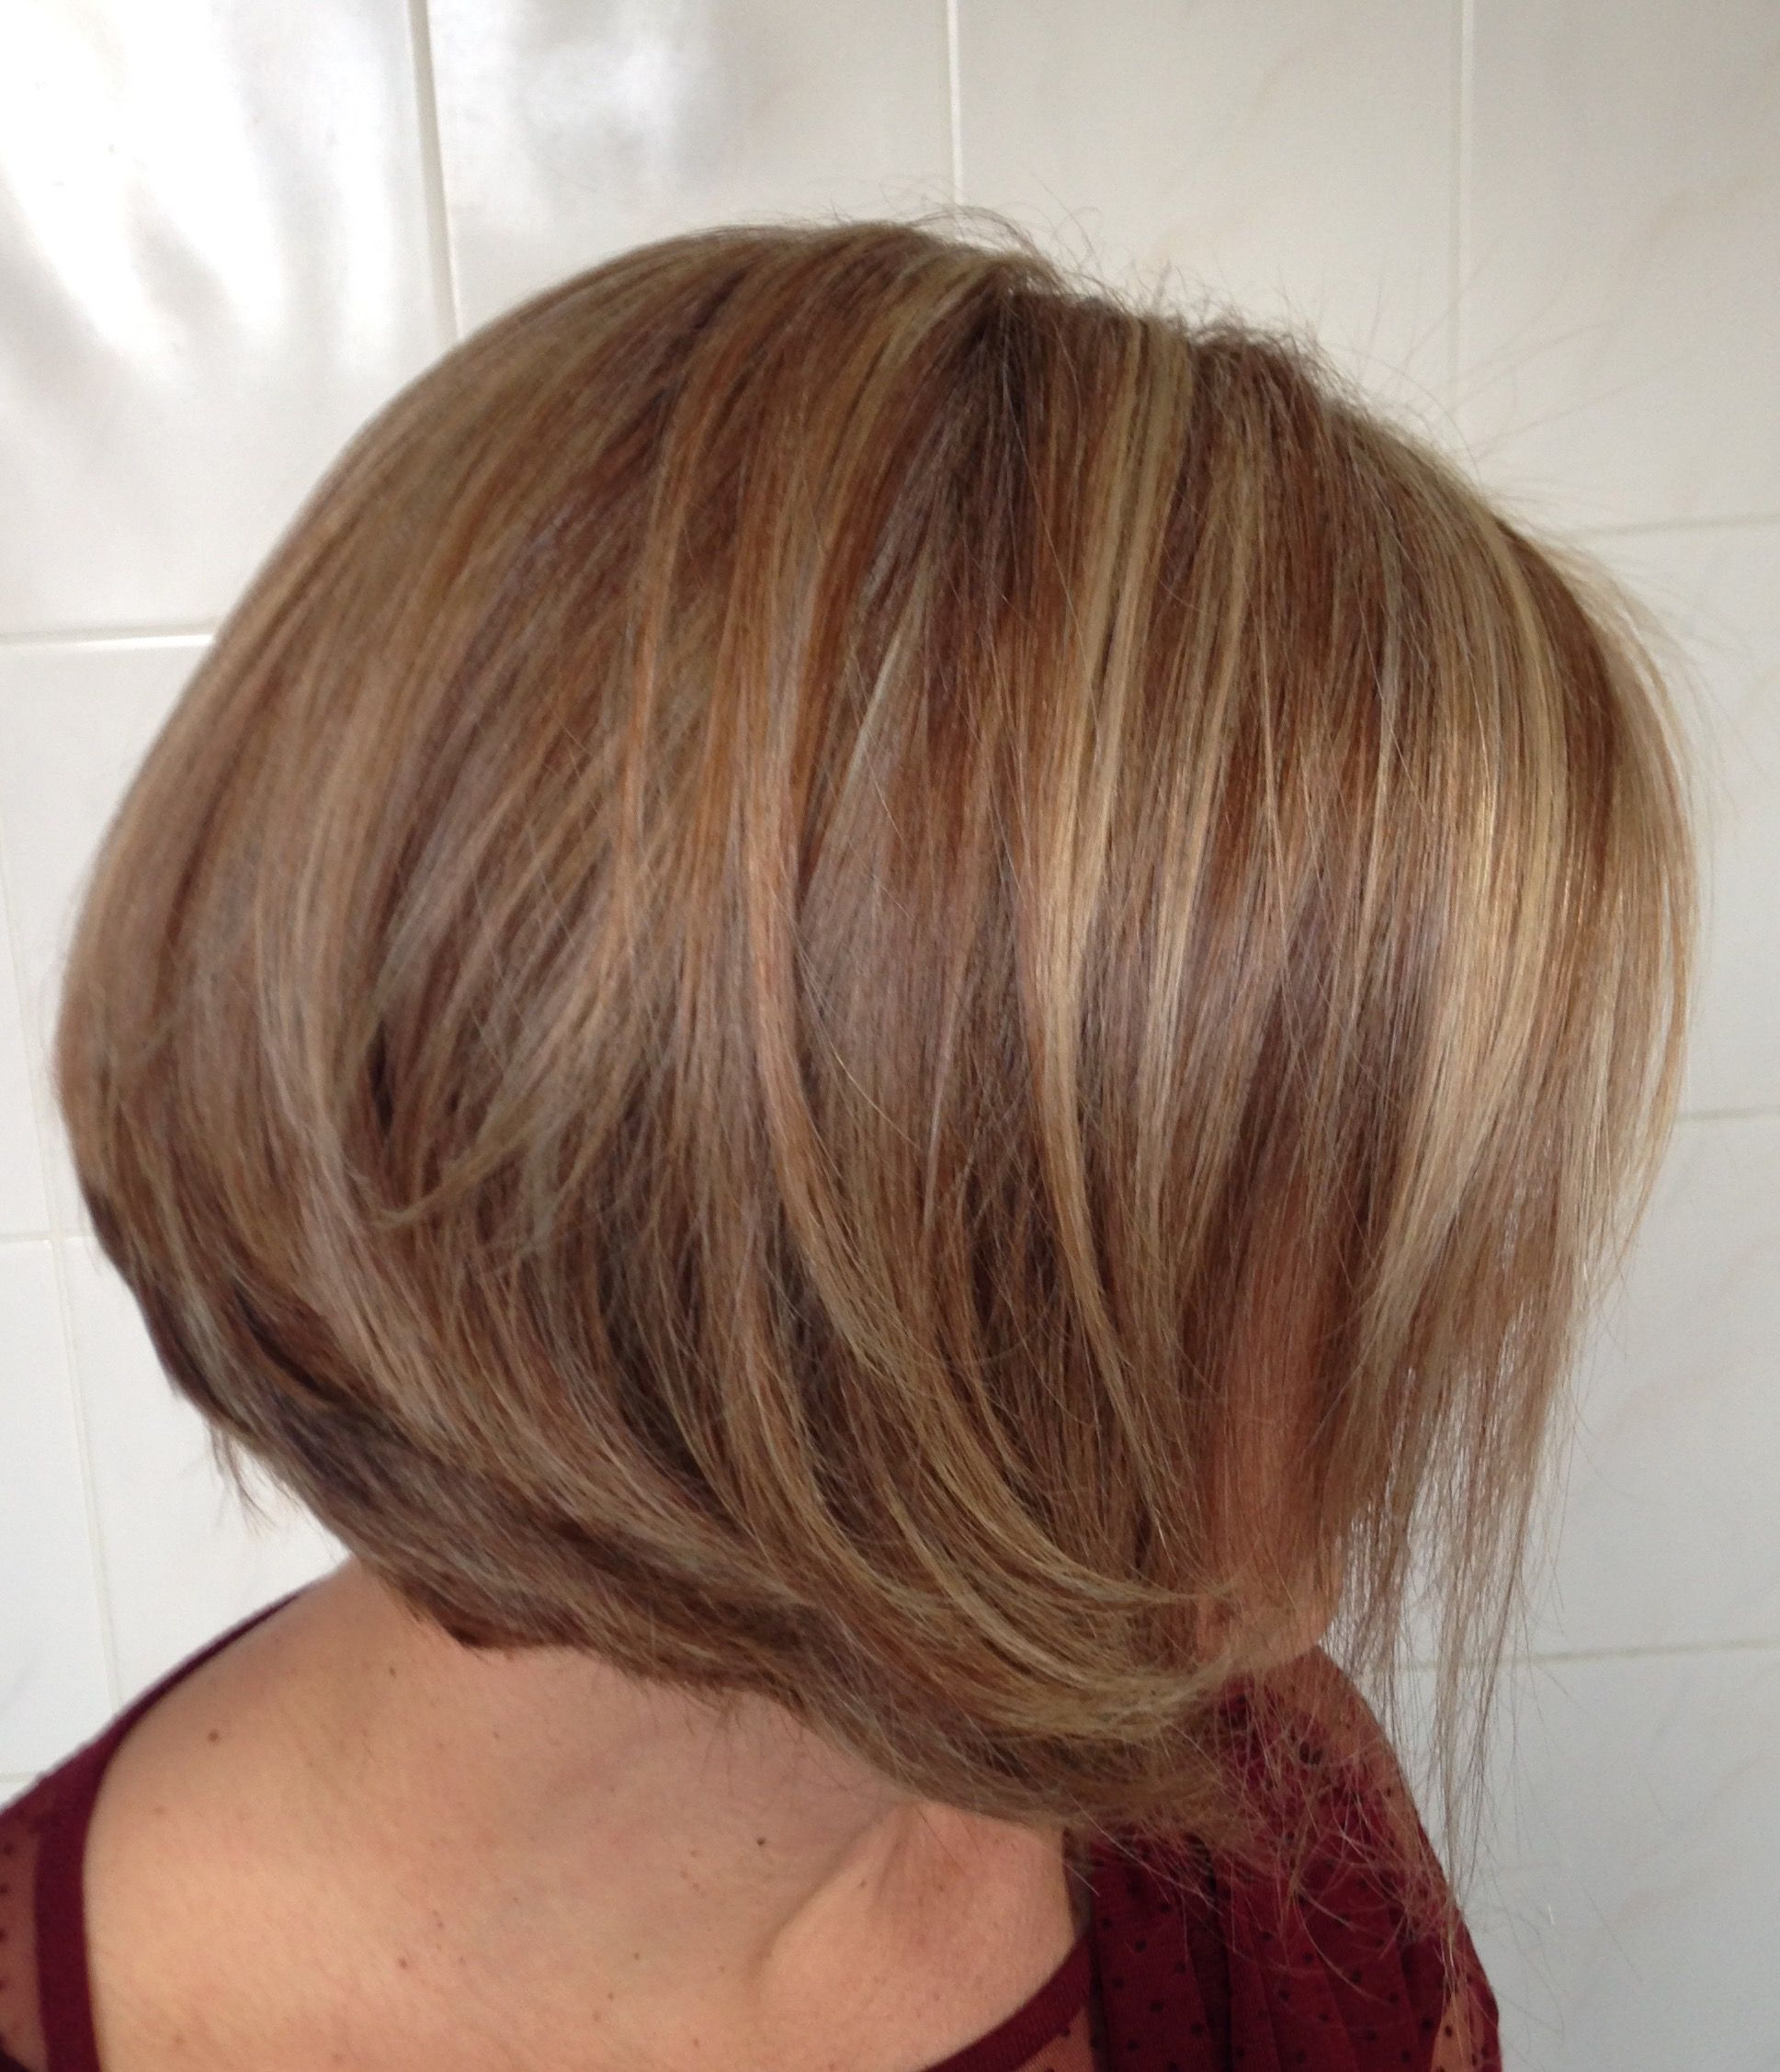 Meche blonde et cuivr fashion designs - Meche cuivre et blond ...